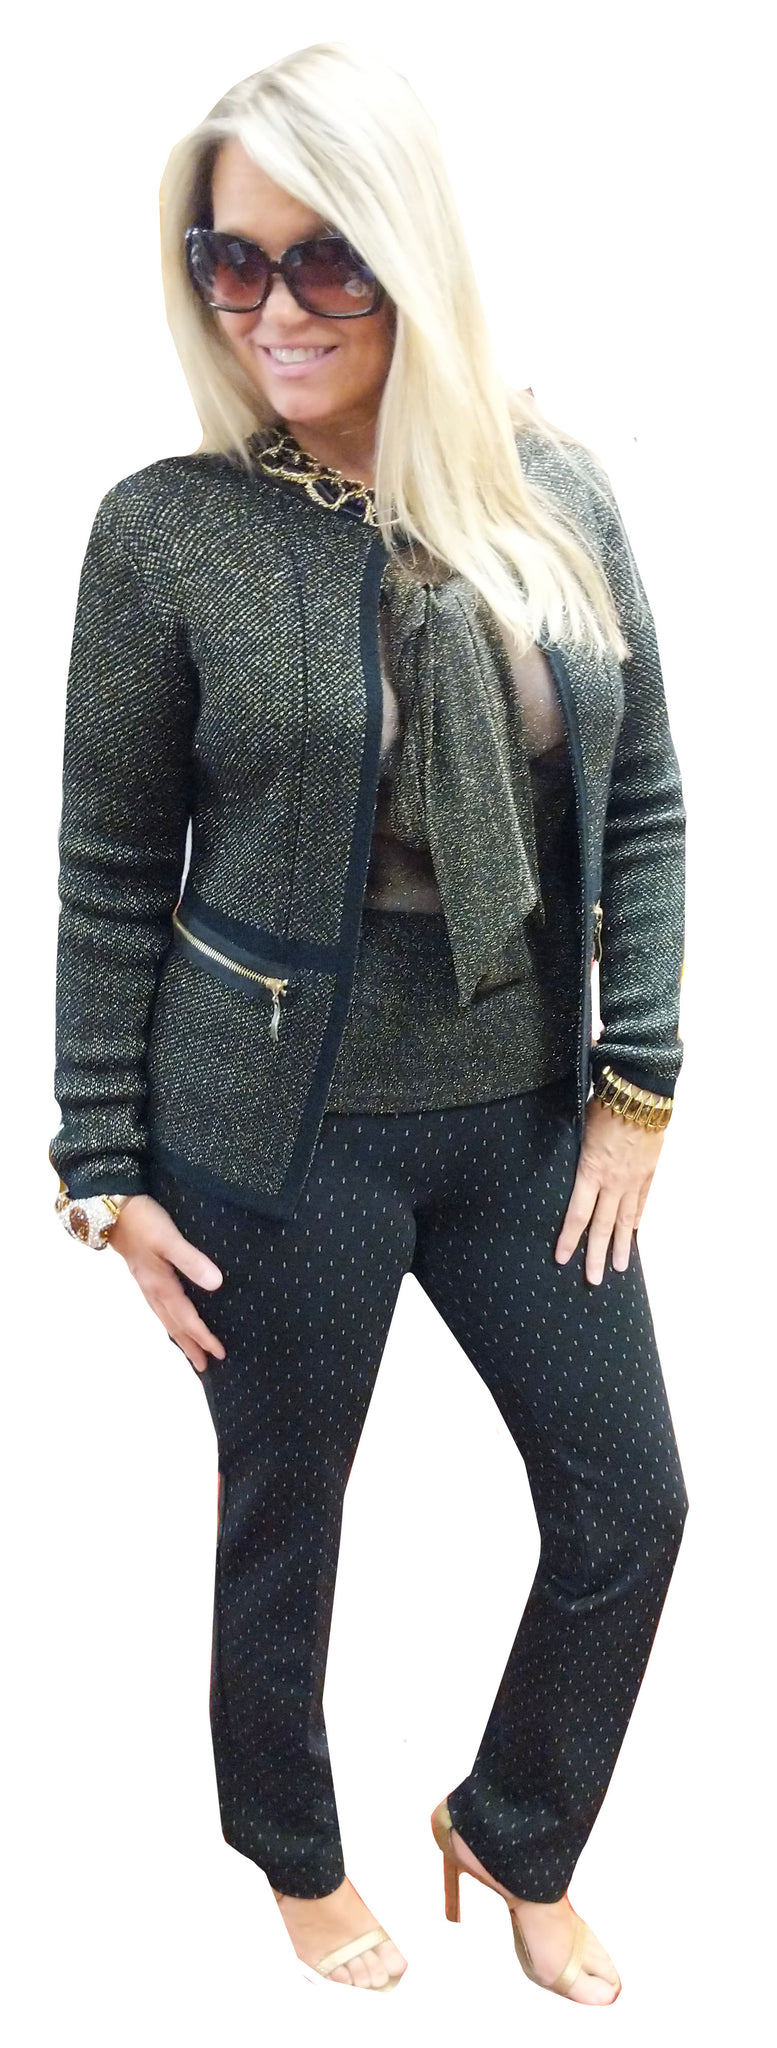 Black and Gold Subtle Knit Zip Chanel Inspired Cardigan